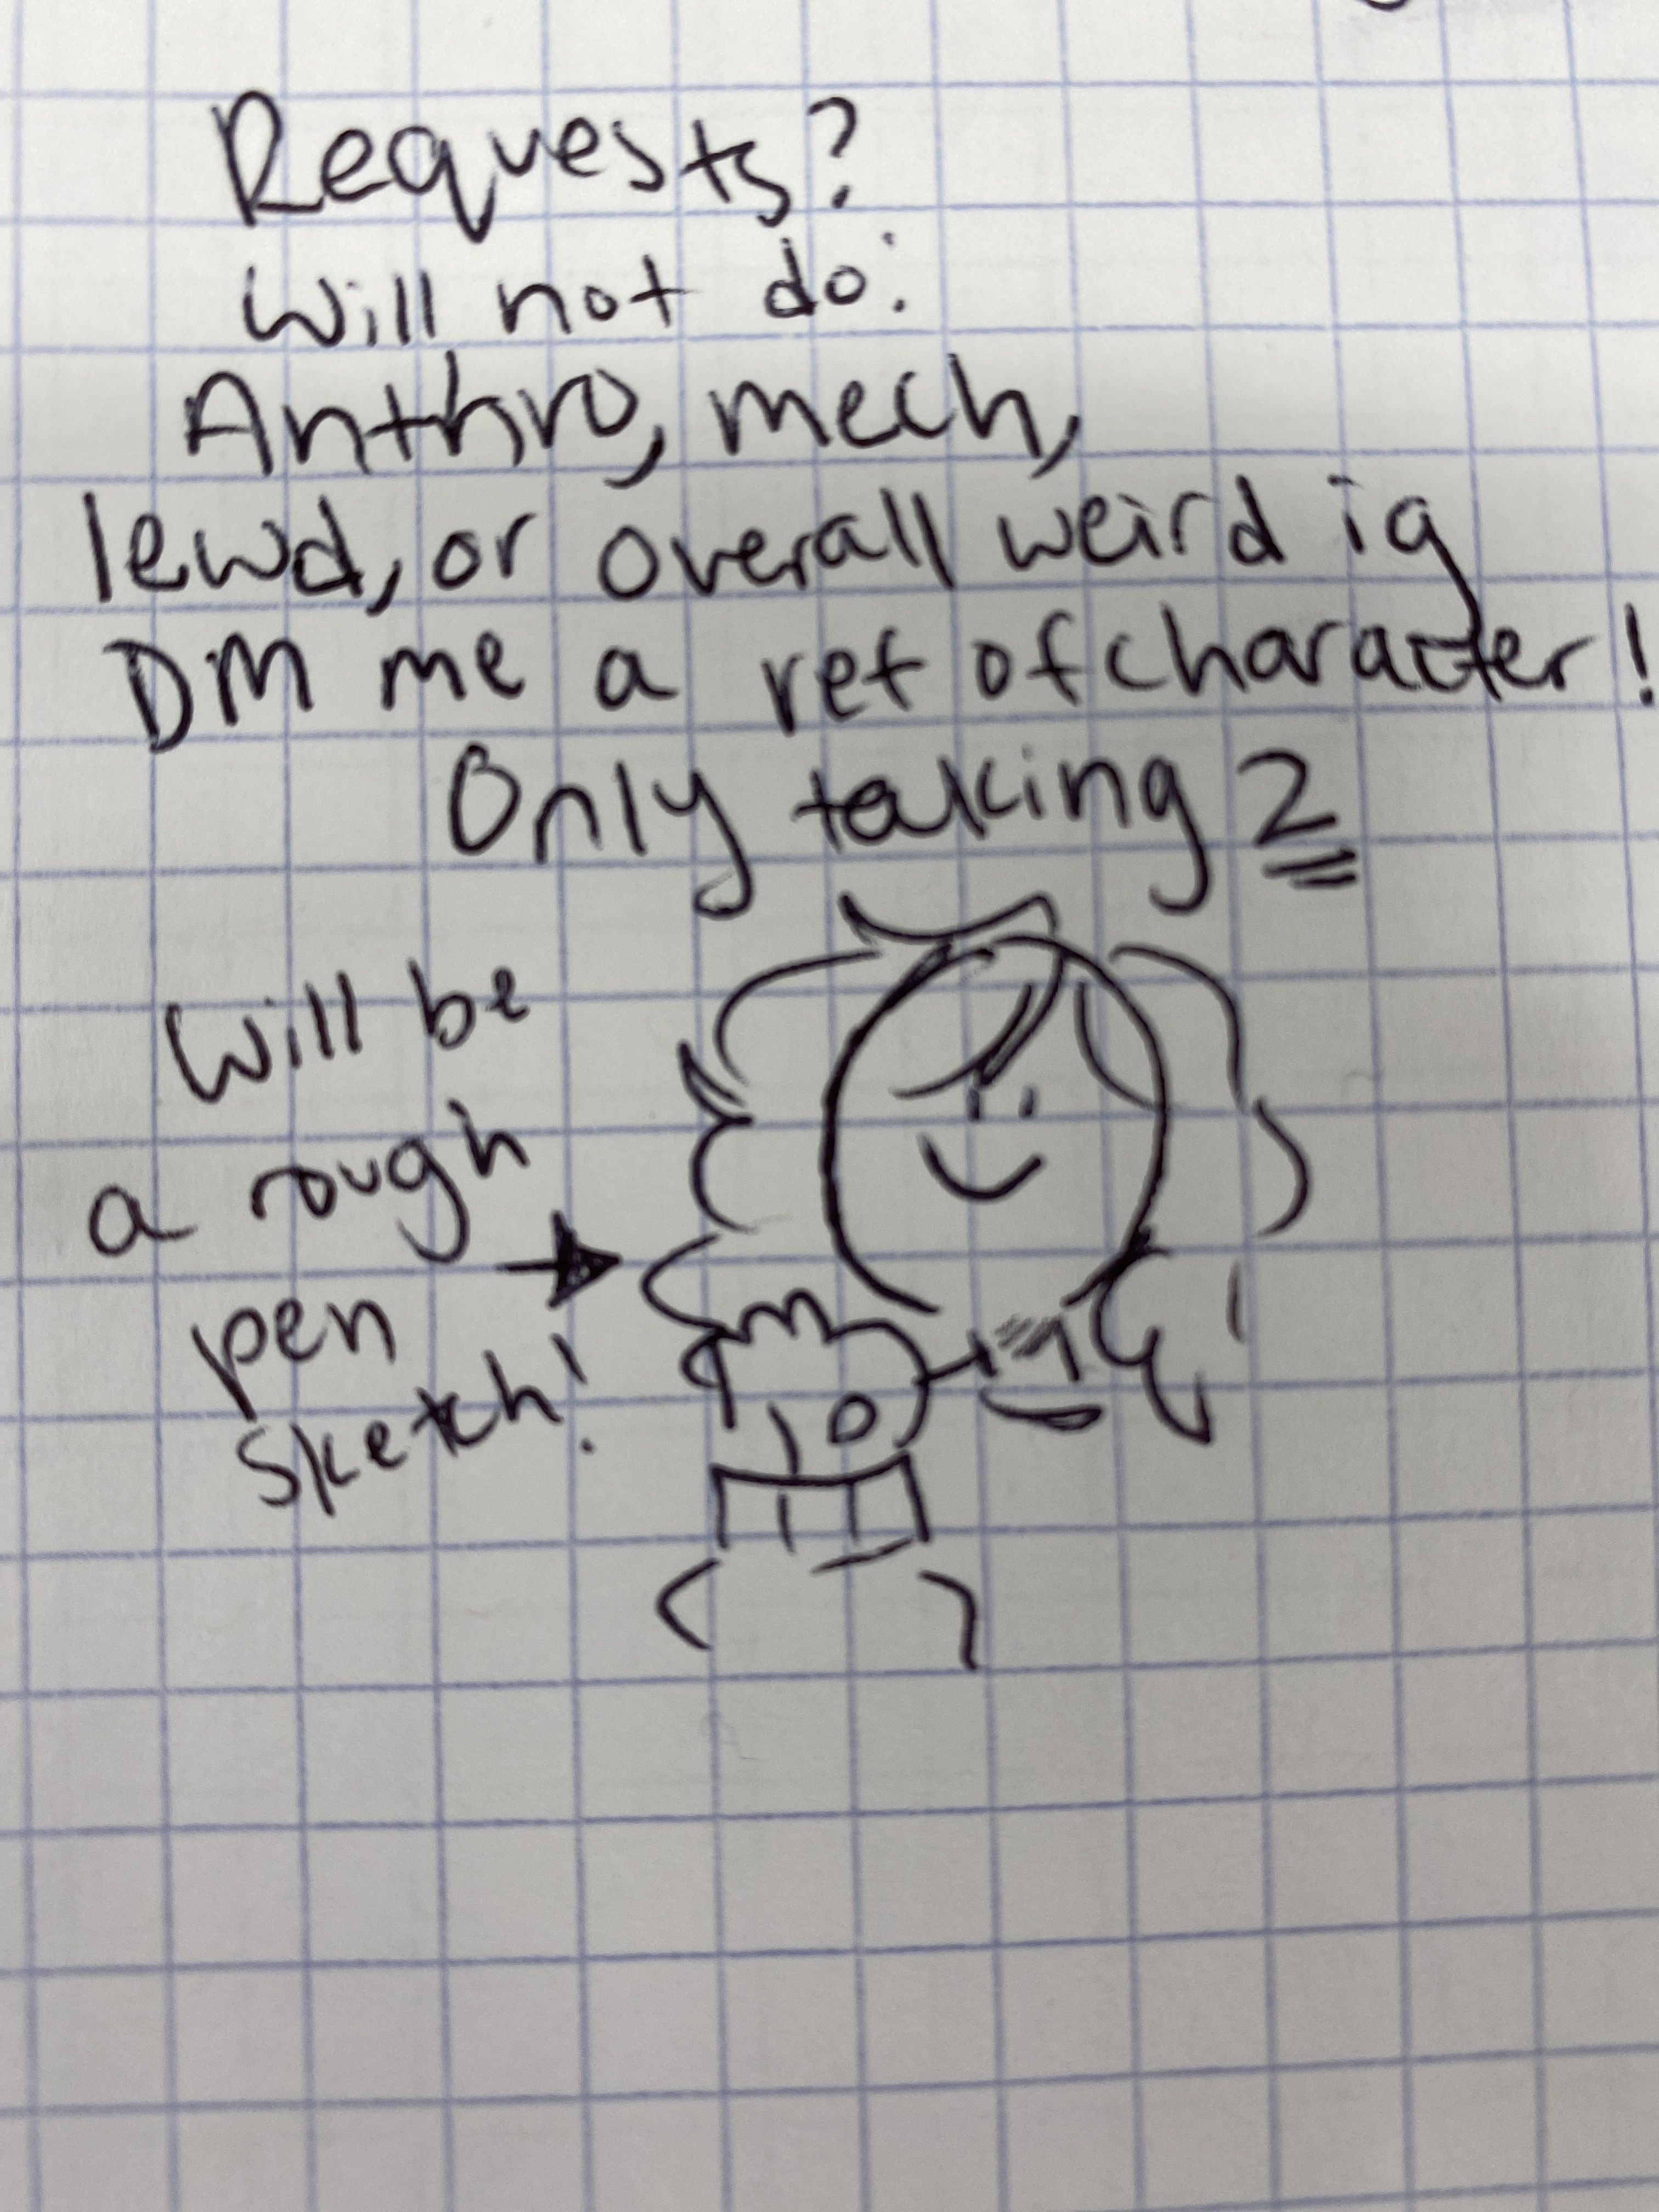 Pin by LoFii on THE DRAWING CREW in 2020 Math, Mech, Vets